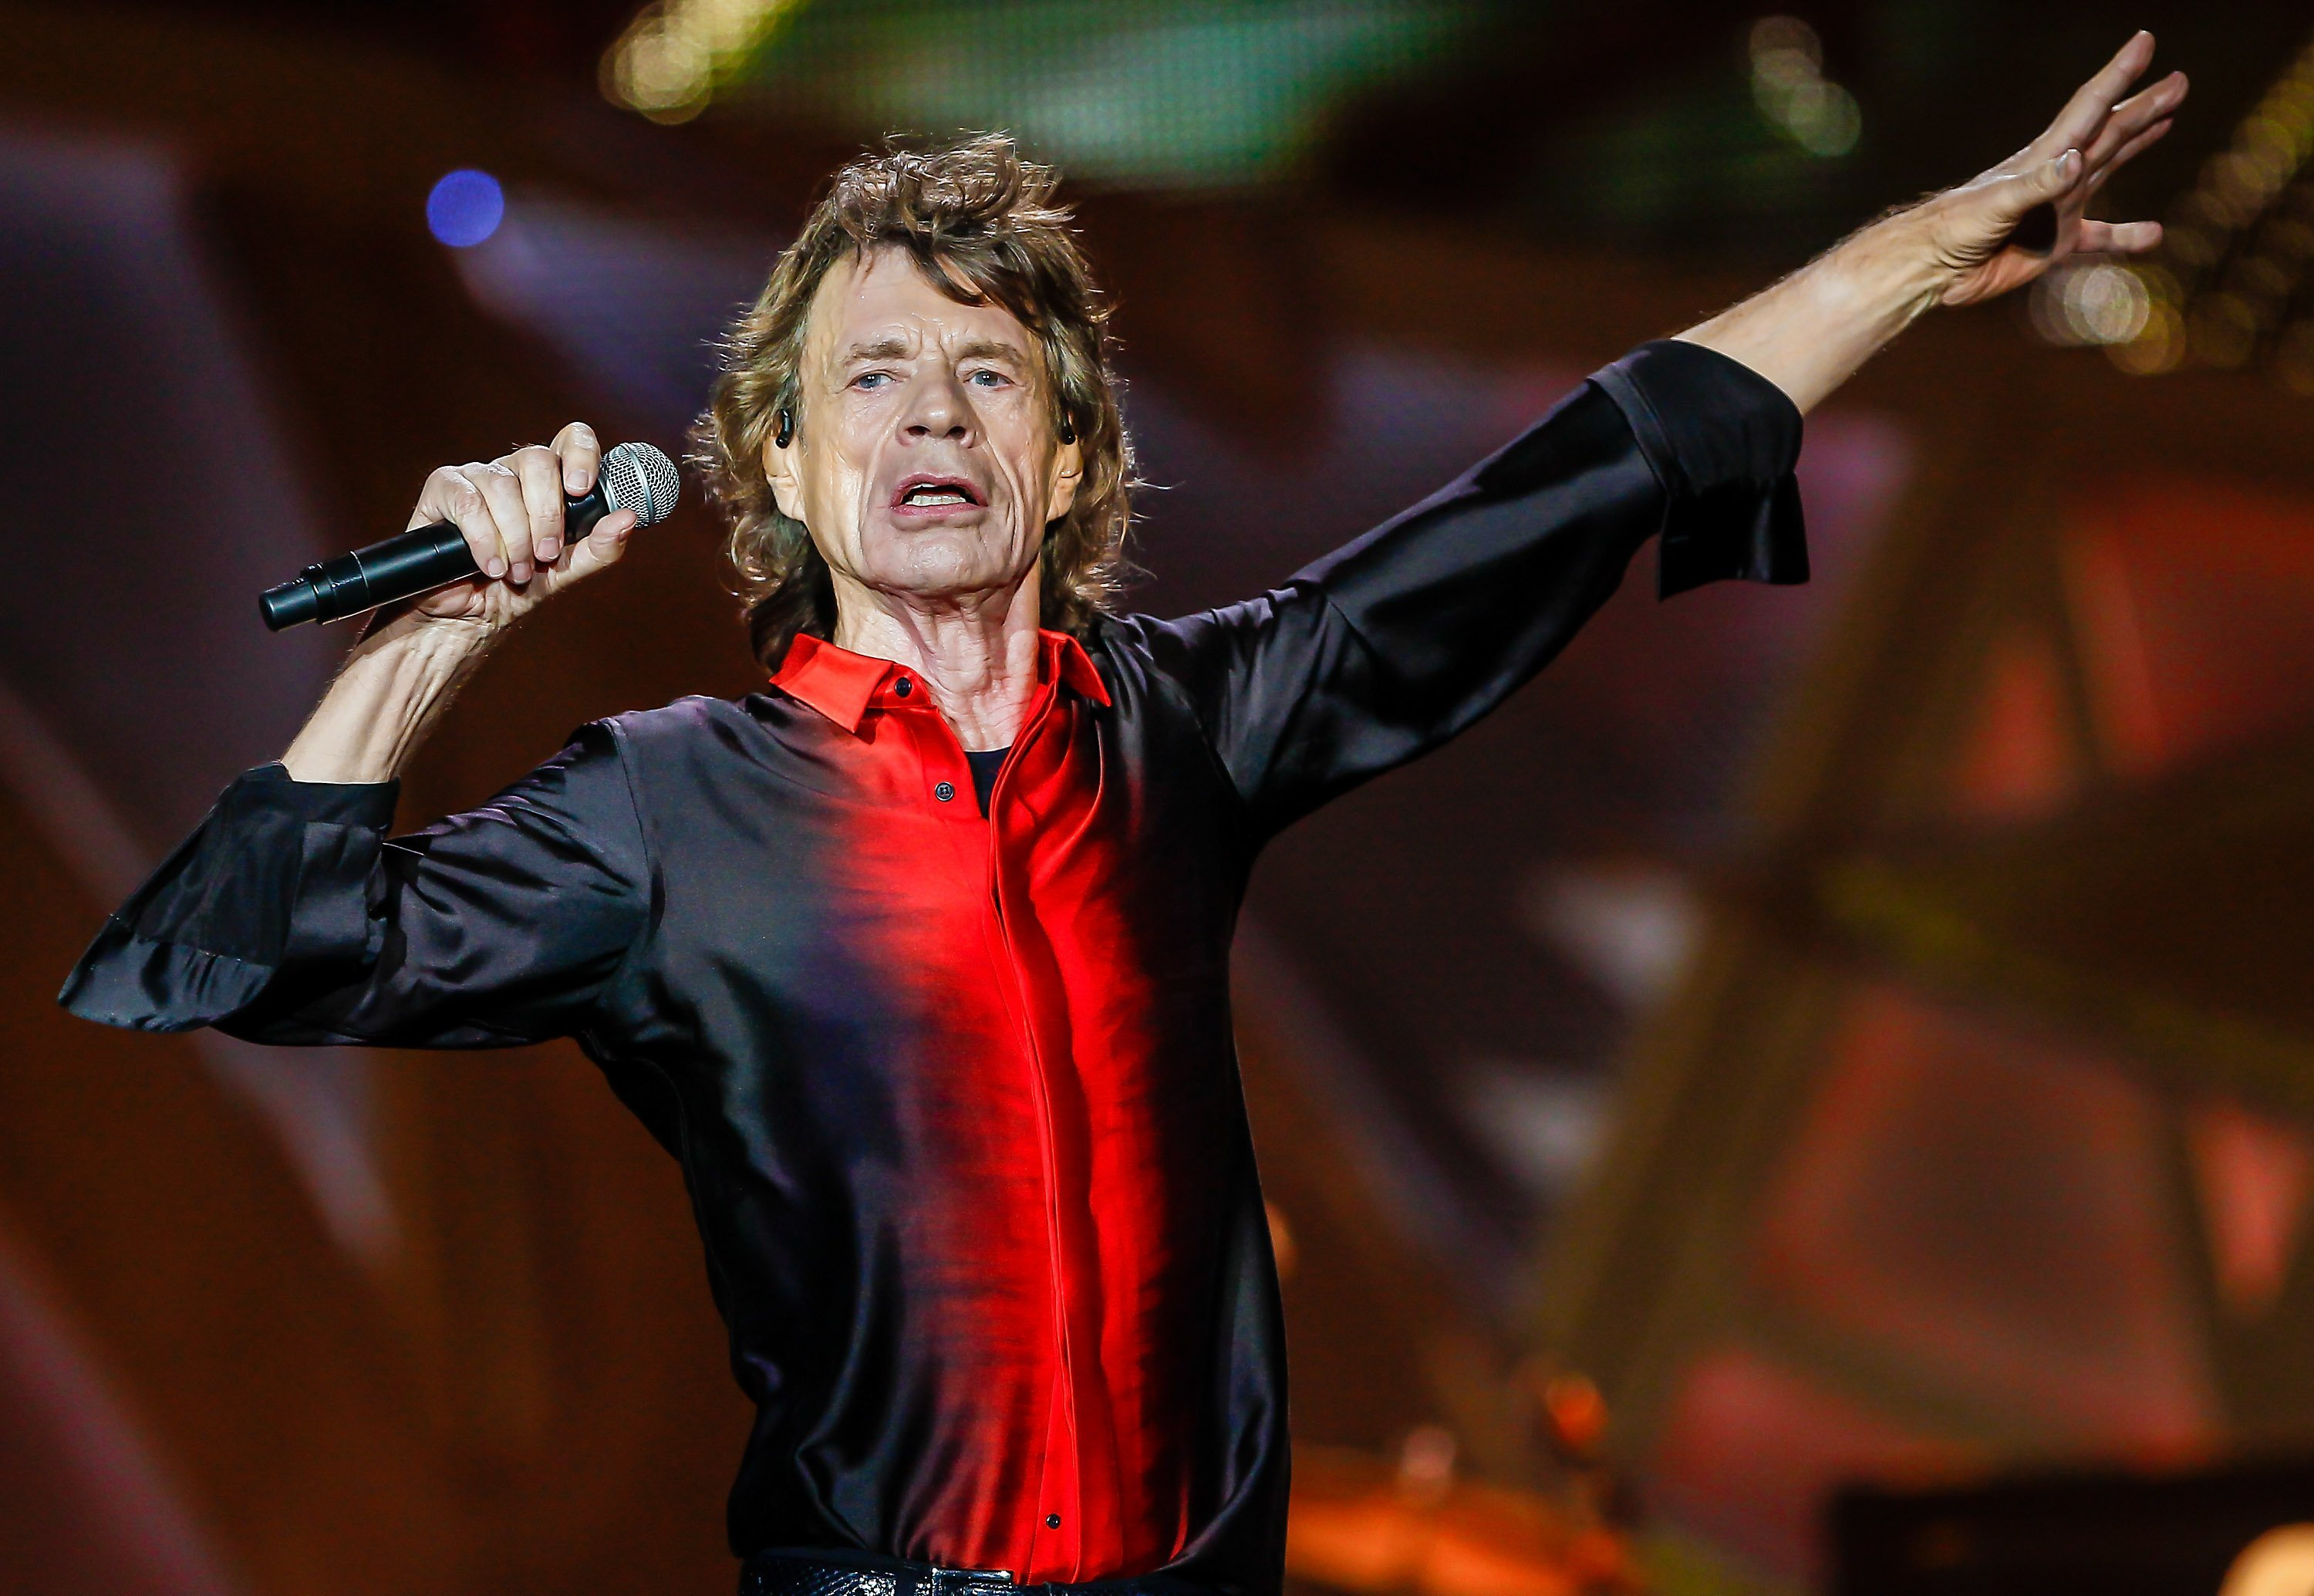 Mick Jagger | Photo: Getty Images